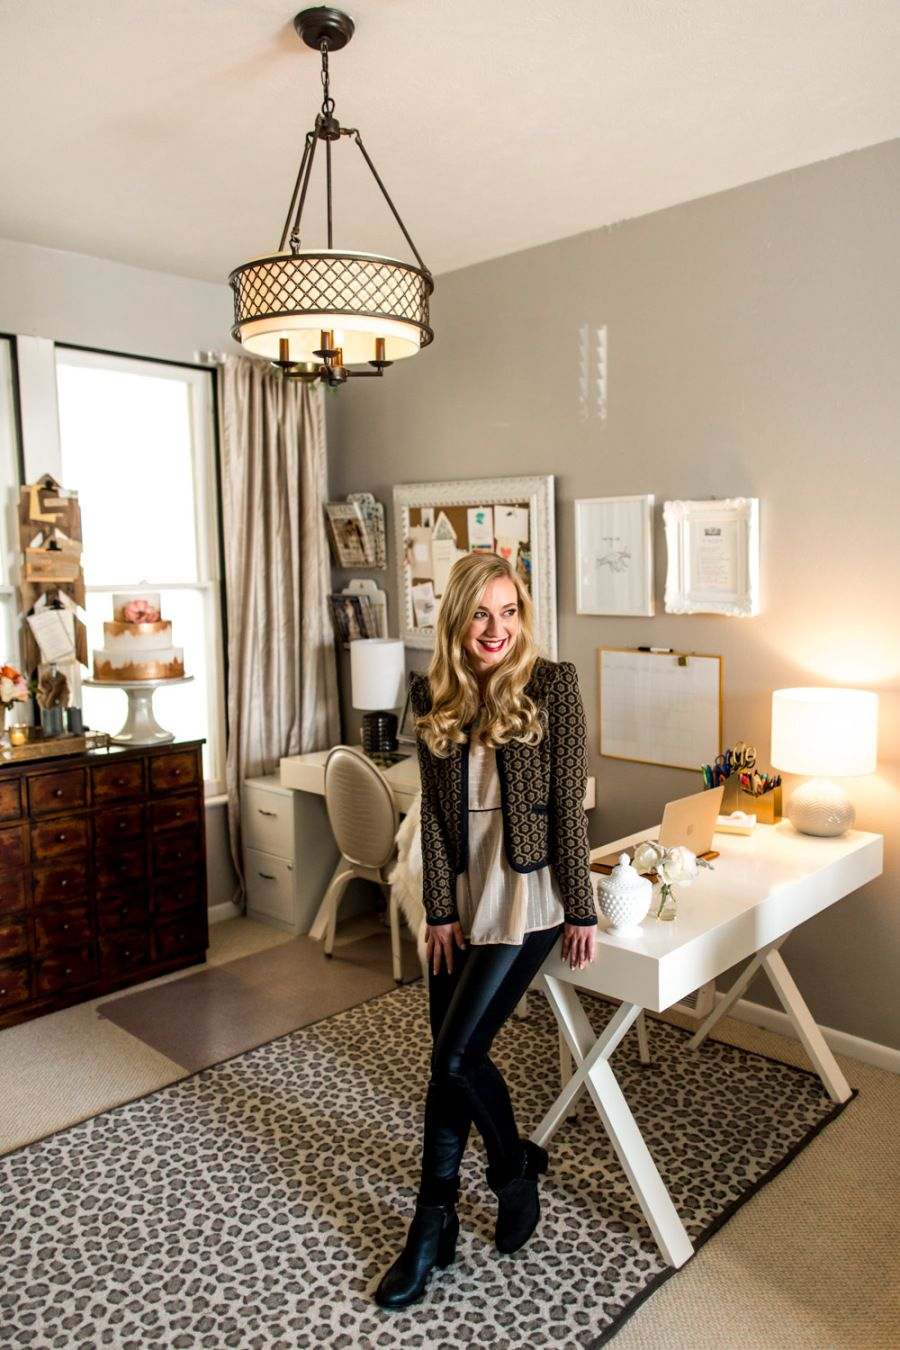 Genius Tips for Decorating a Small Space